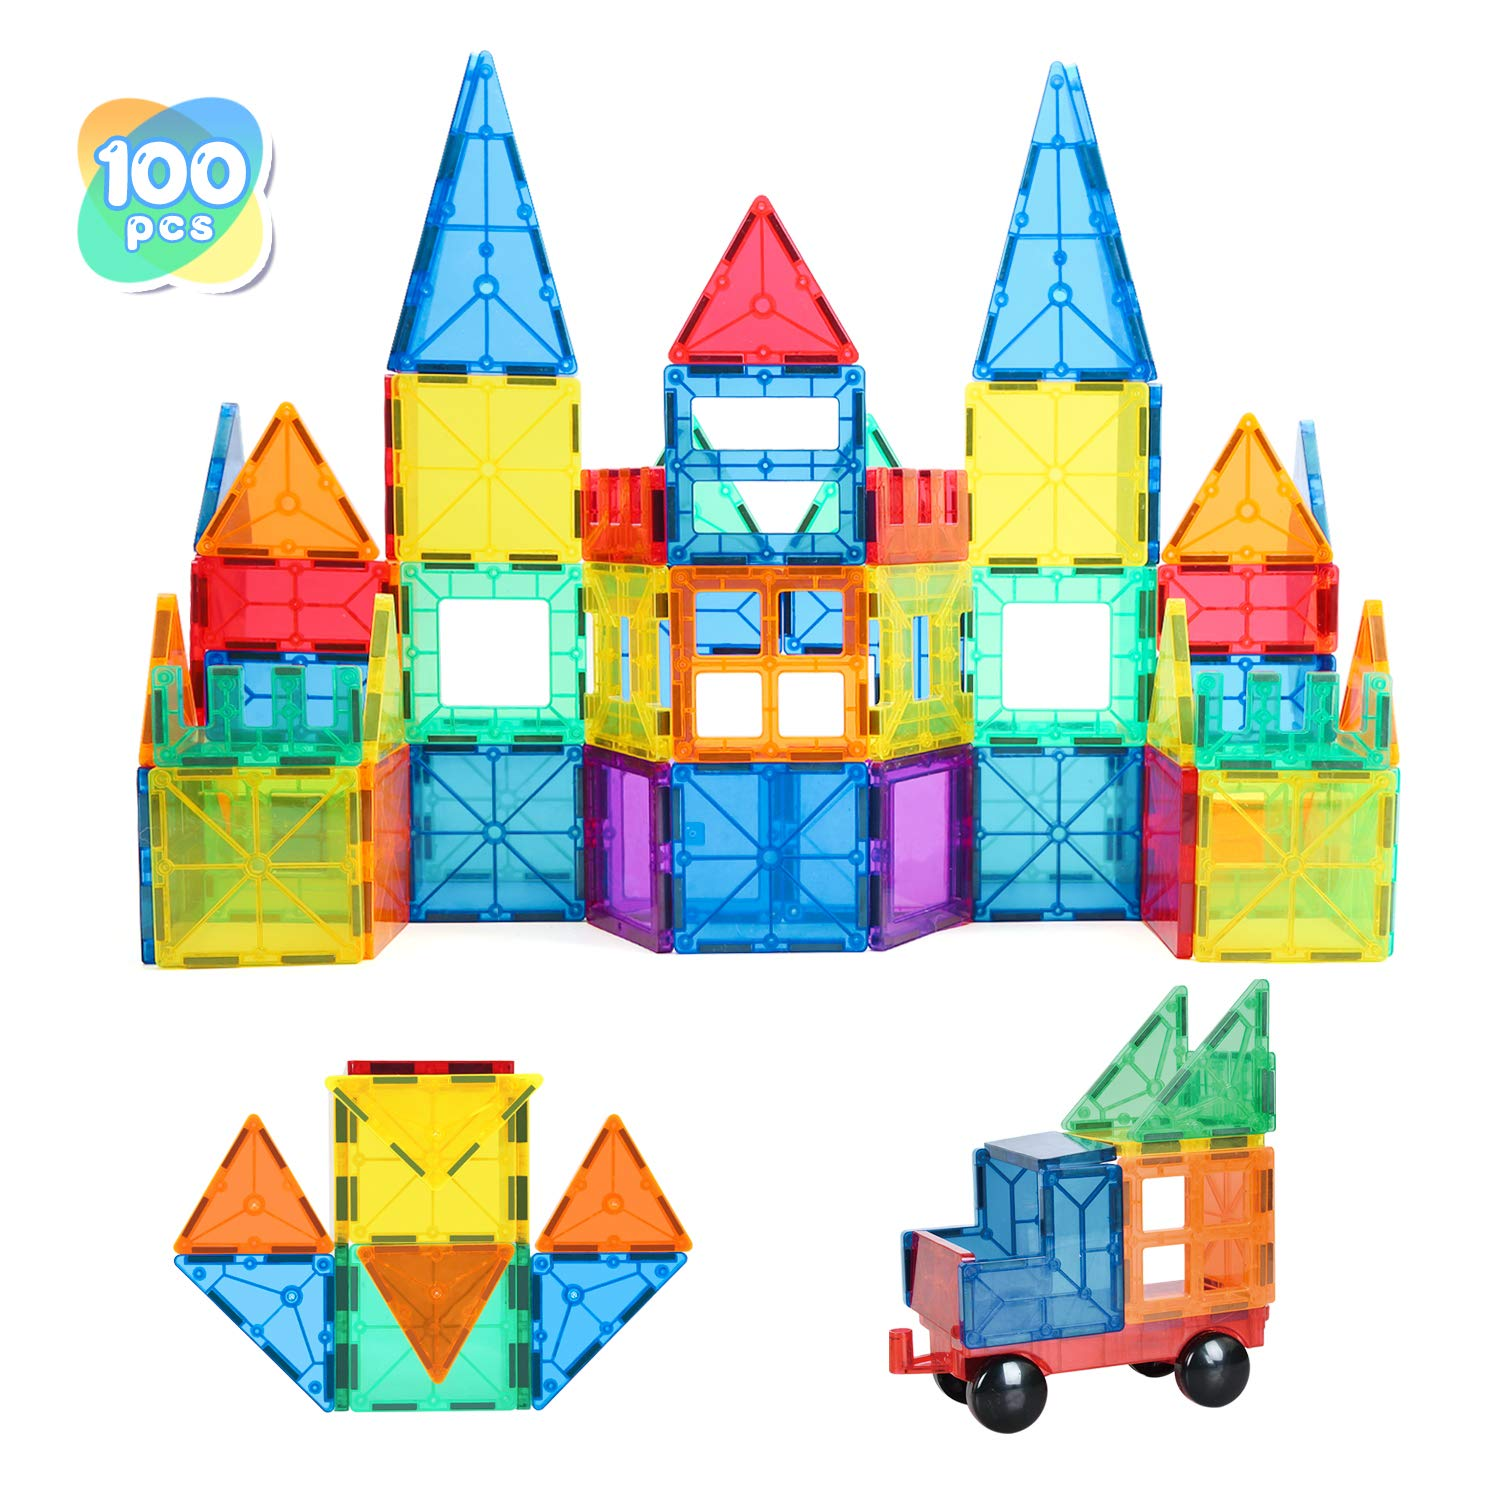 VegCow 100pcs Magnetic Tiles Set - 3D Magnet Building Blocks, Educational Construction Toys for Kids – Super Durable with Strong Magnets and Superior Color by VegCow (Image #1)